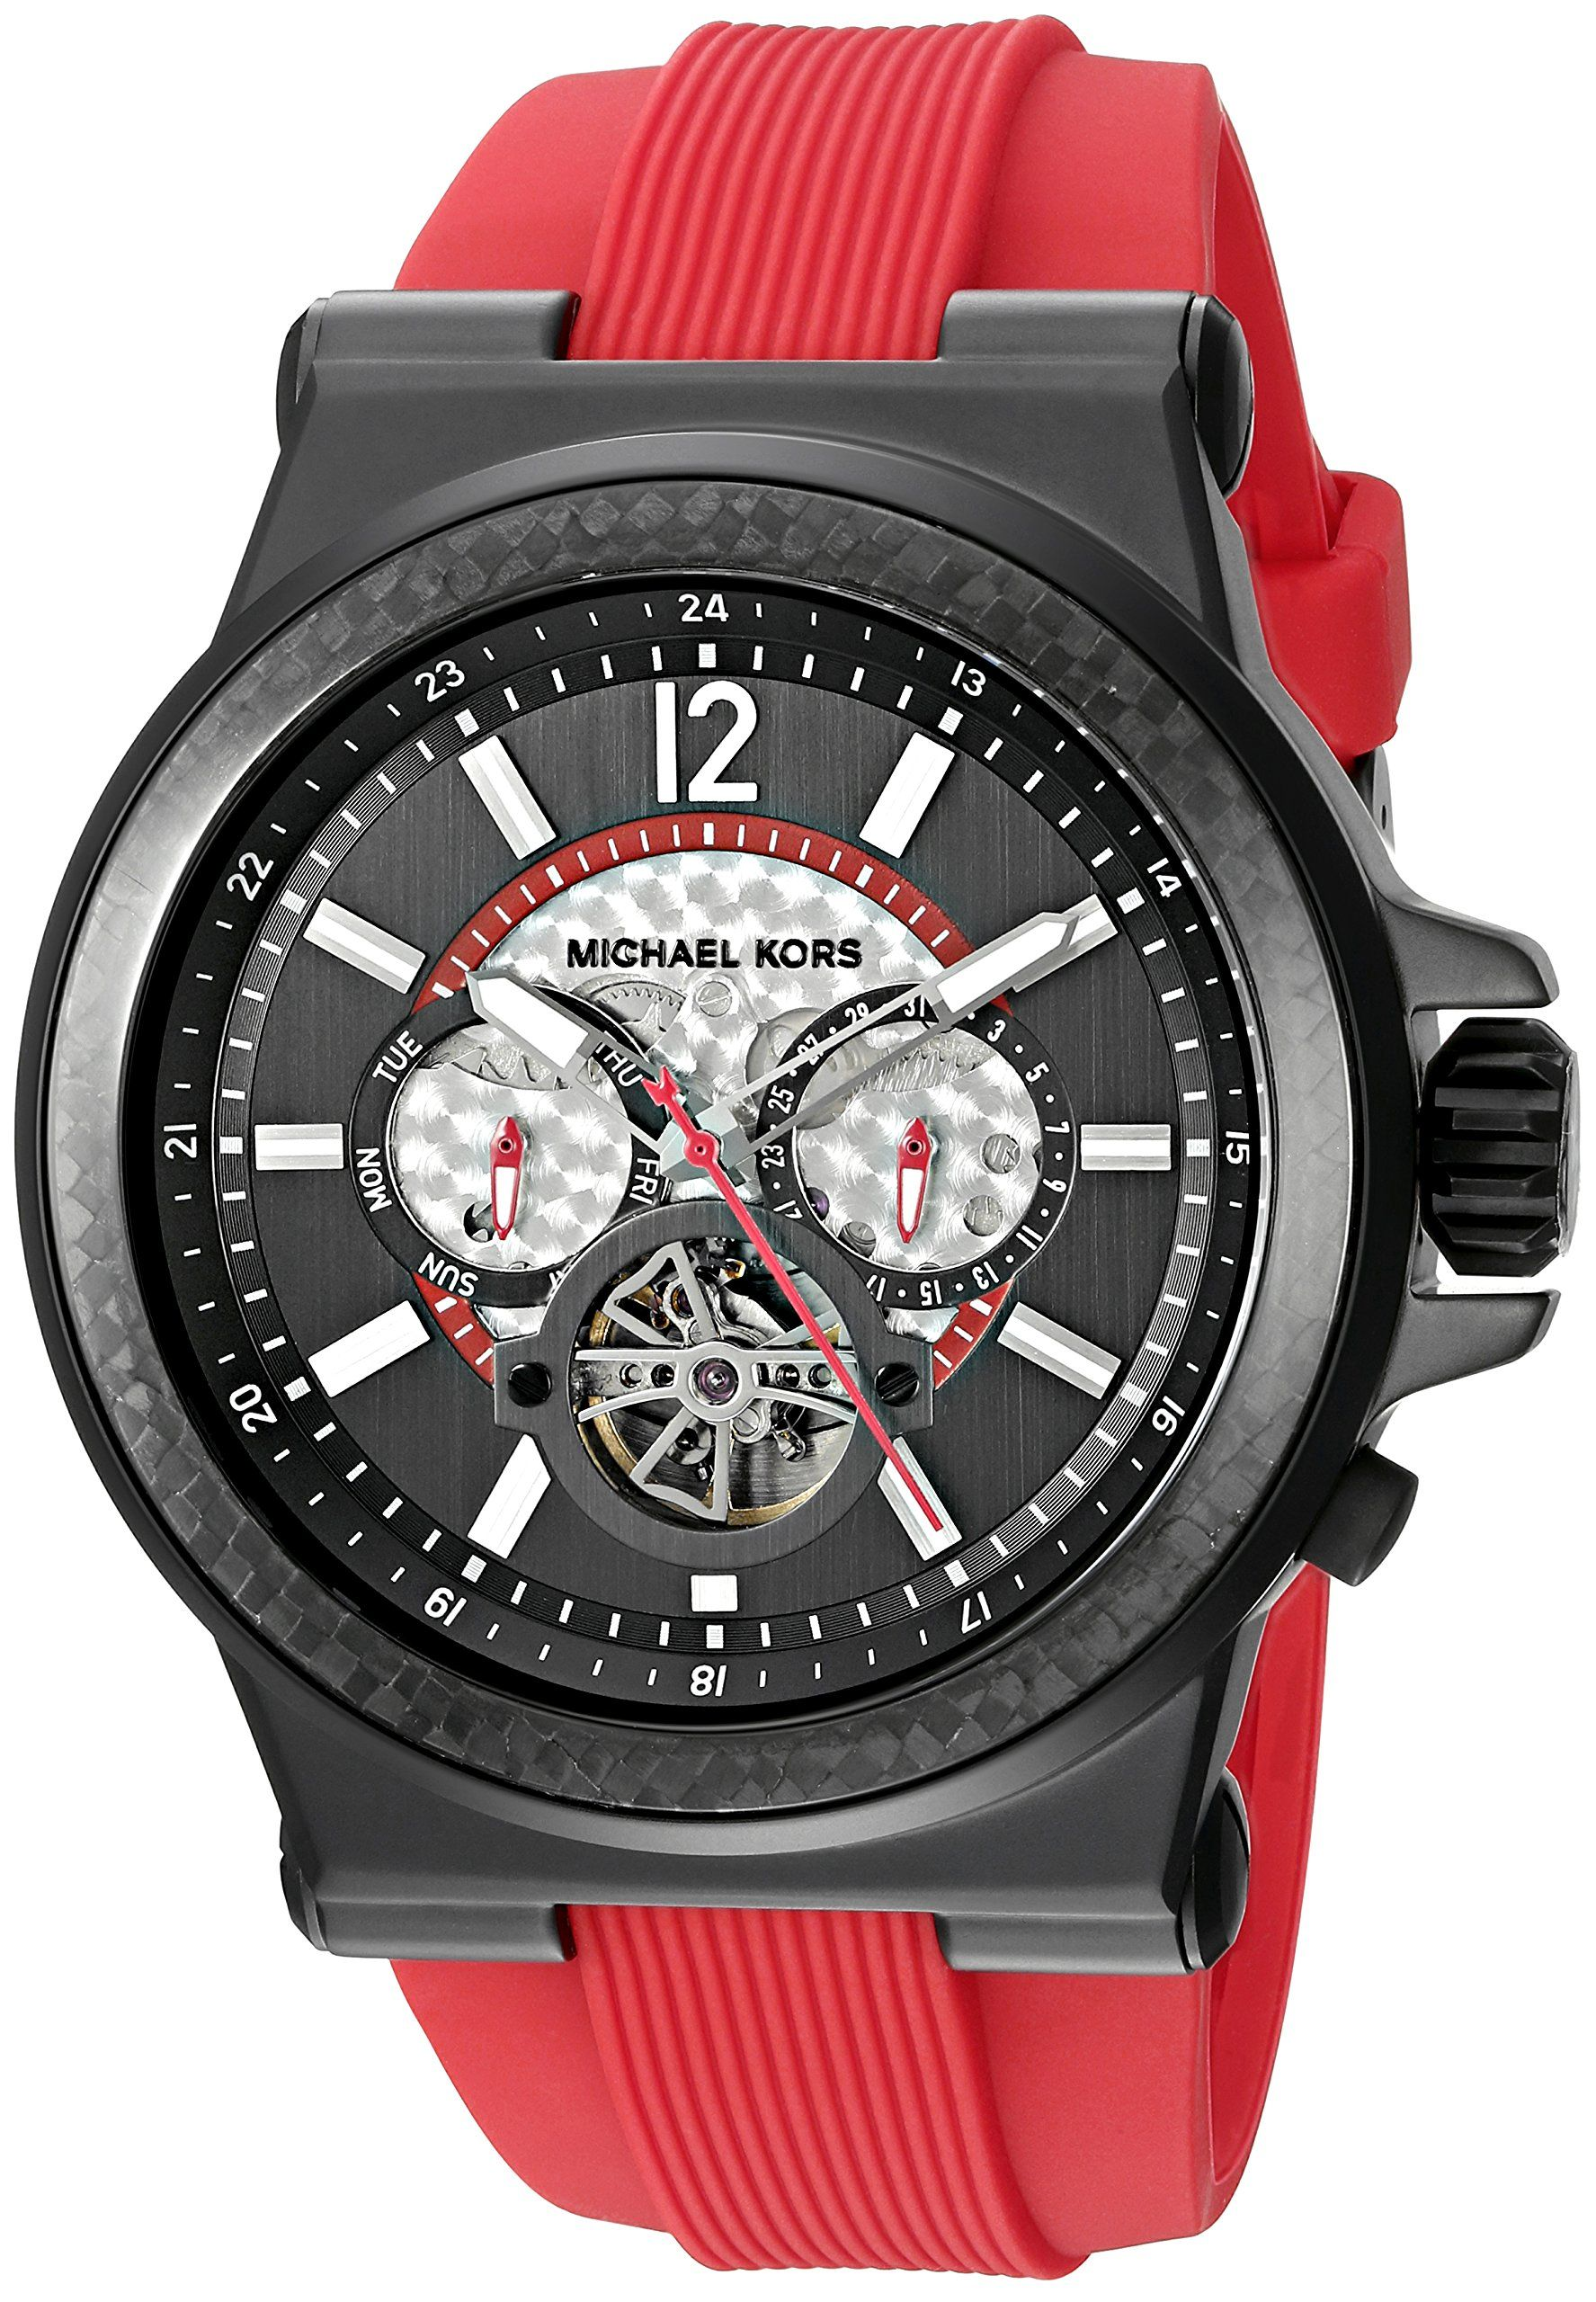 on for red x mens click watches mvmt nice purchase image men stylish black pinterest to best images casio watch